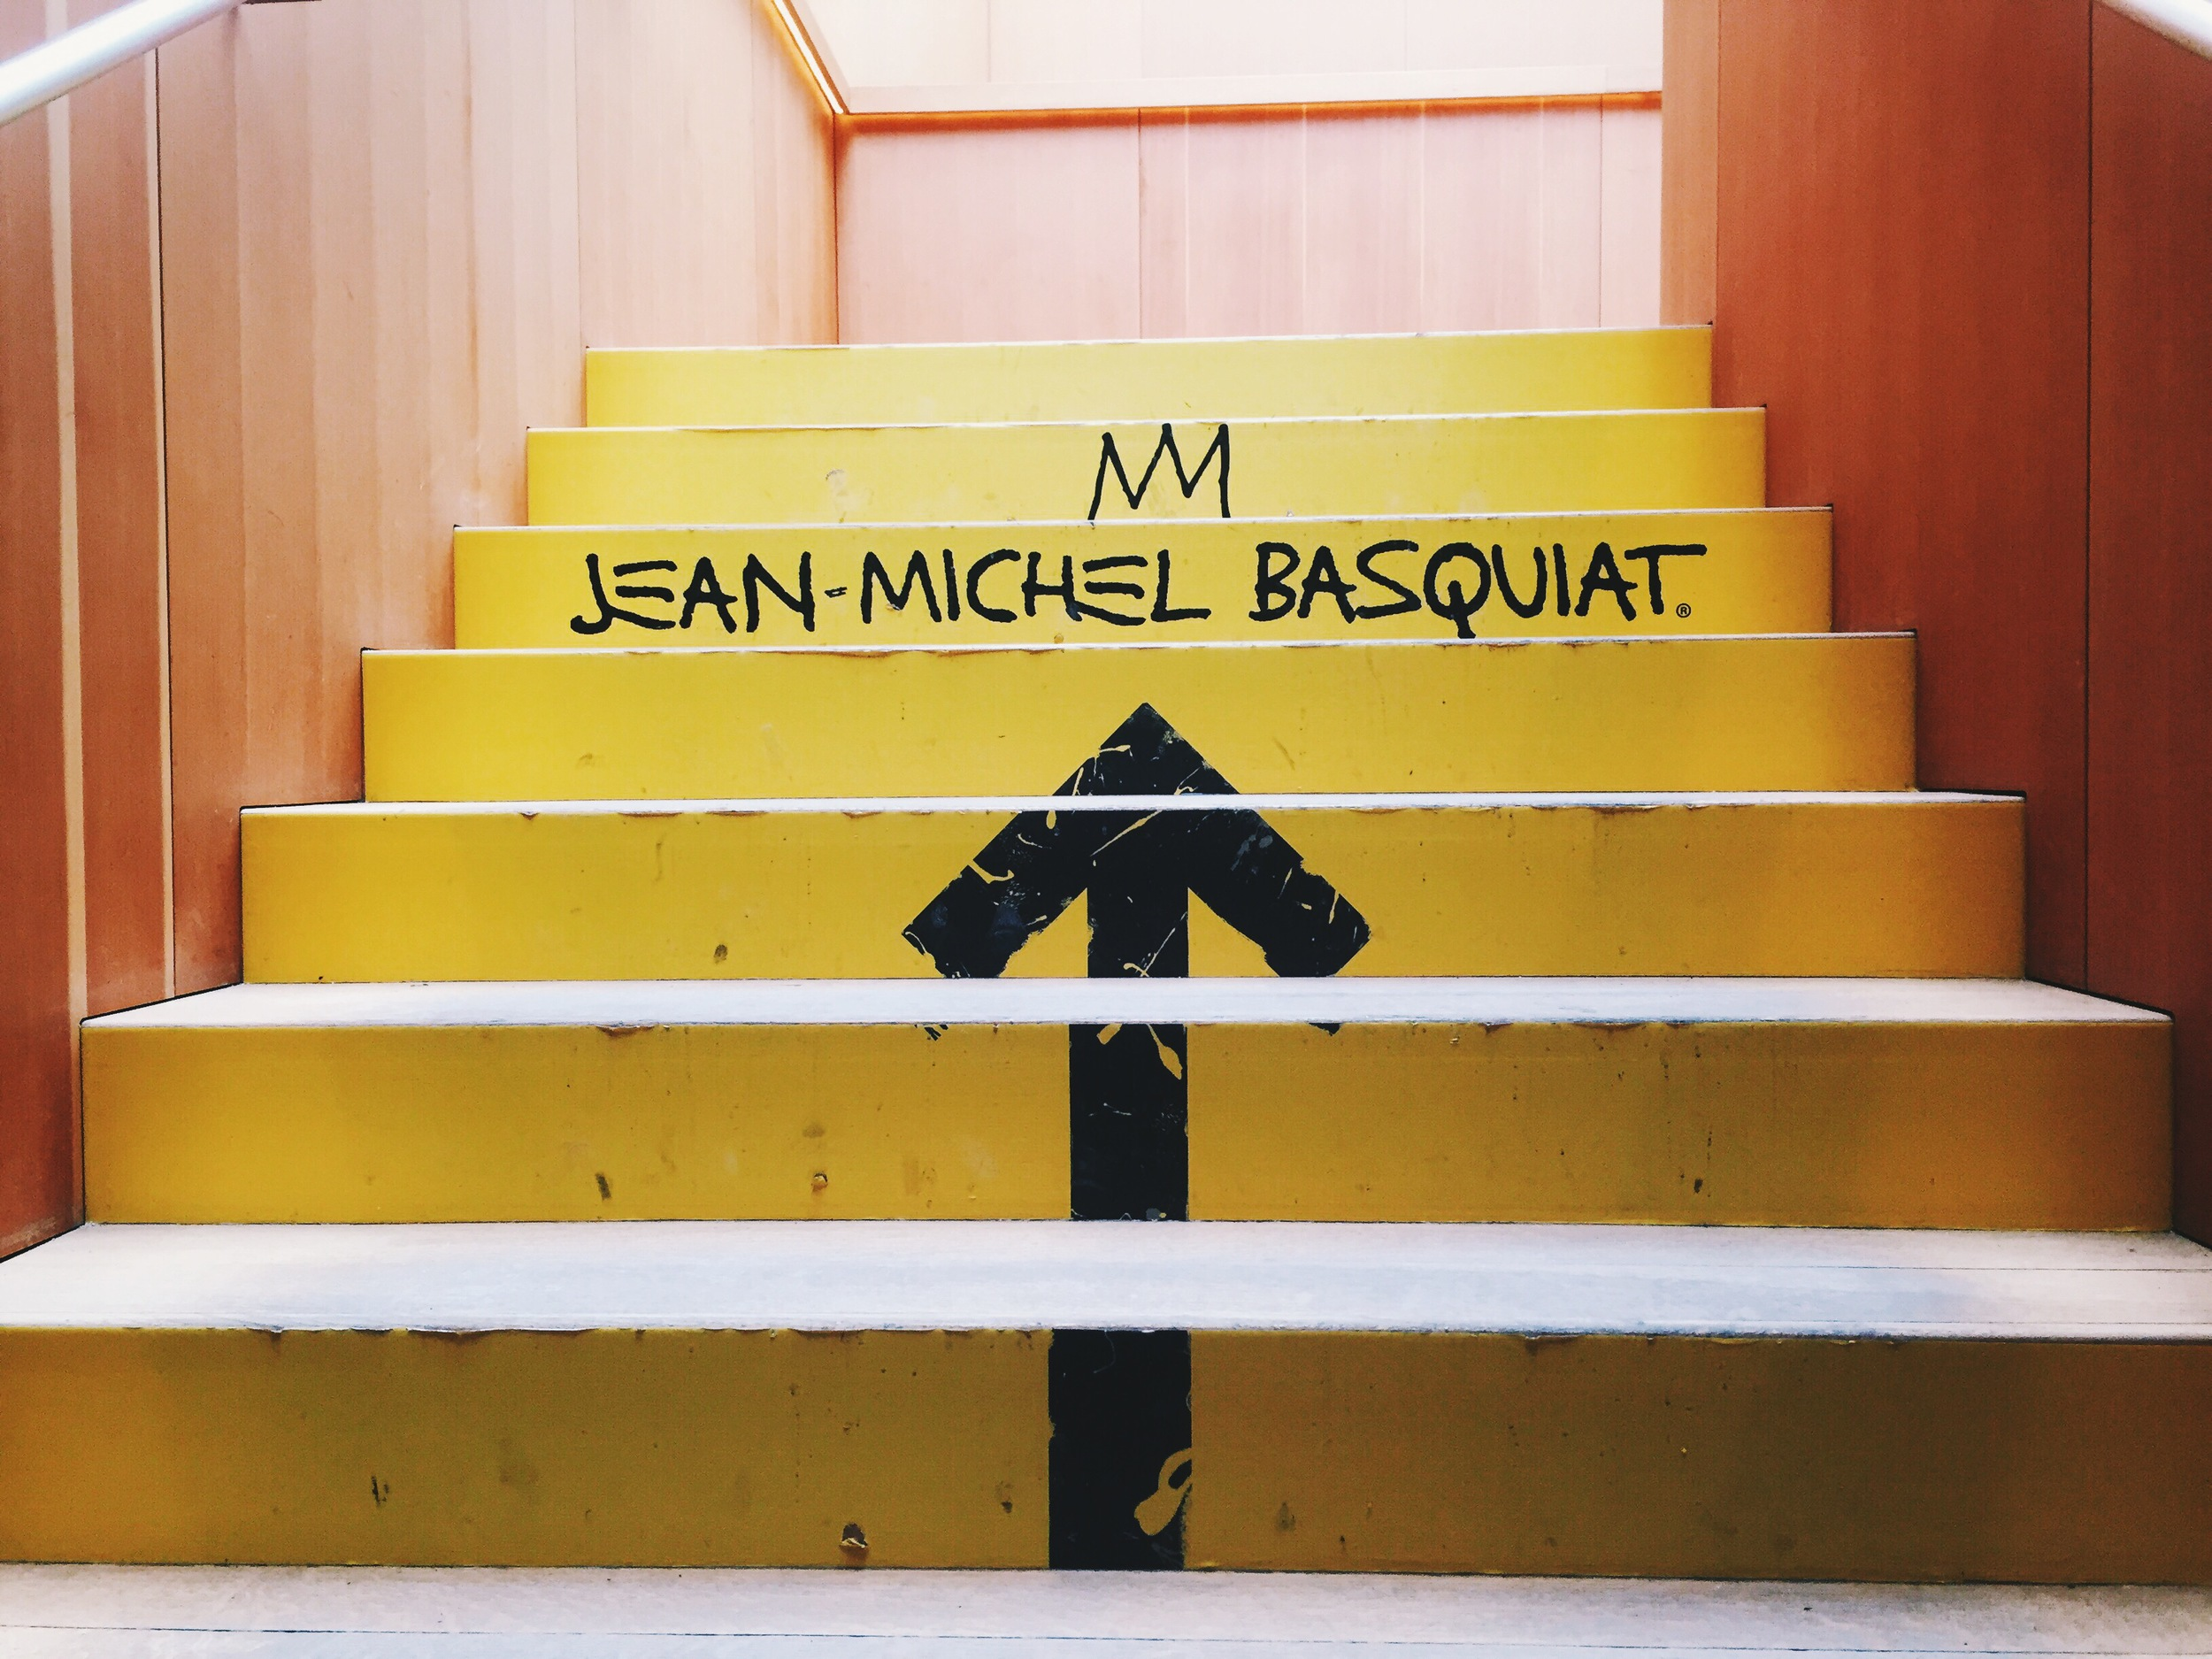 Jean-Michel Basquiat: Now's the Time . A must see.